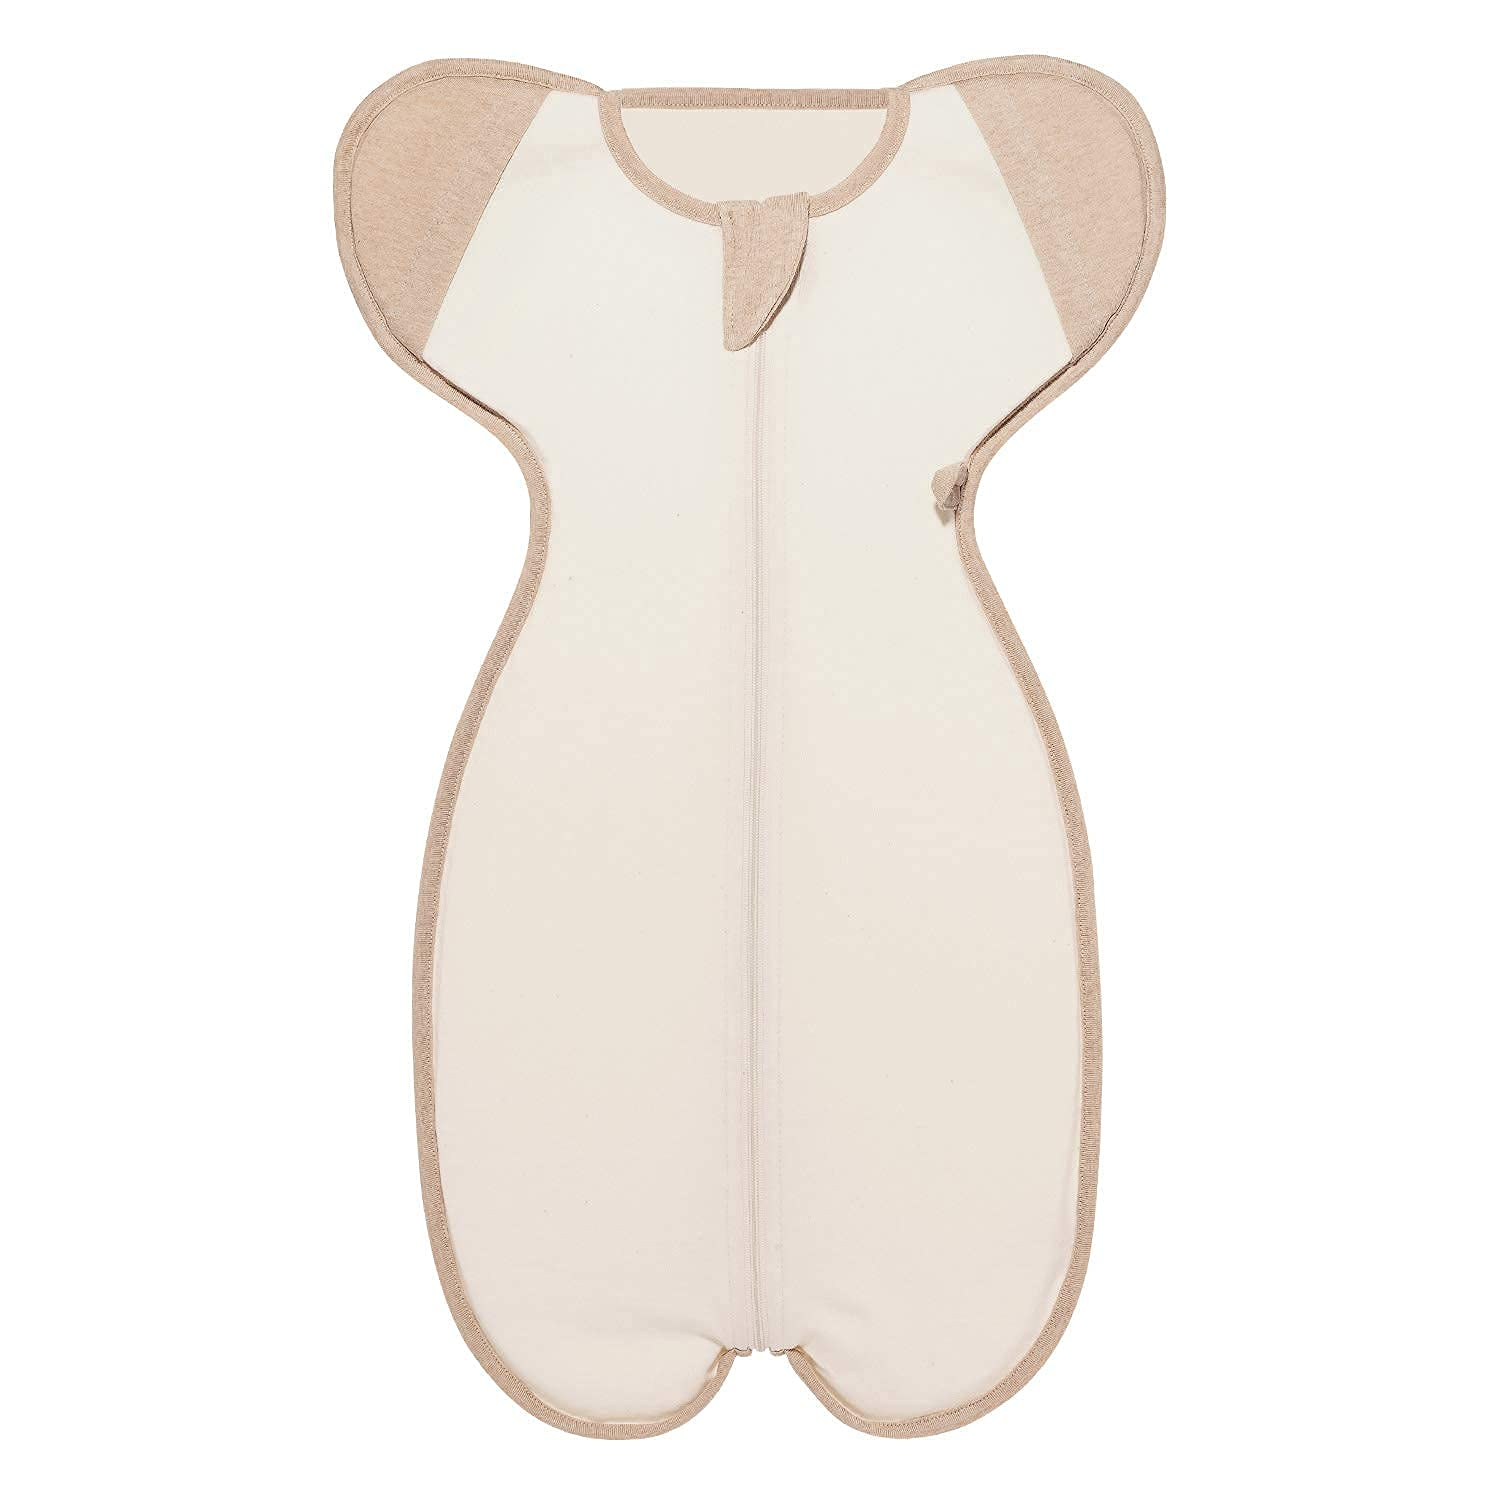 CCOCCOZAM Swaddle Organic We OFFer at cheap prices 100% Medium - Latest item lbs 19 Transition 13